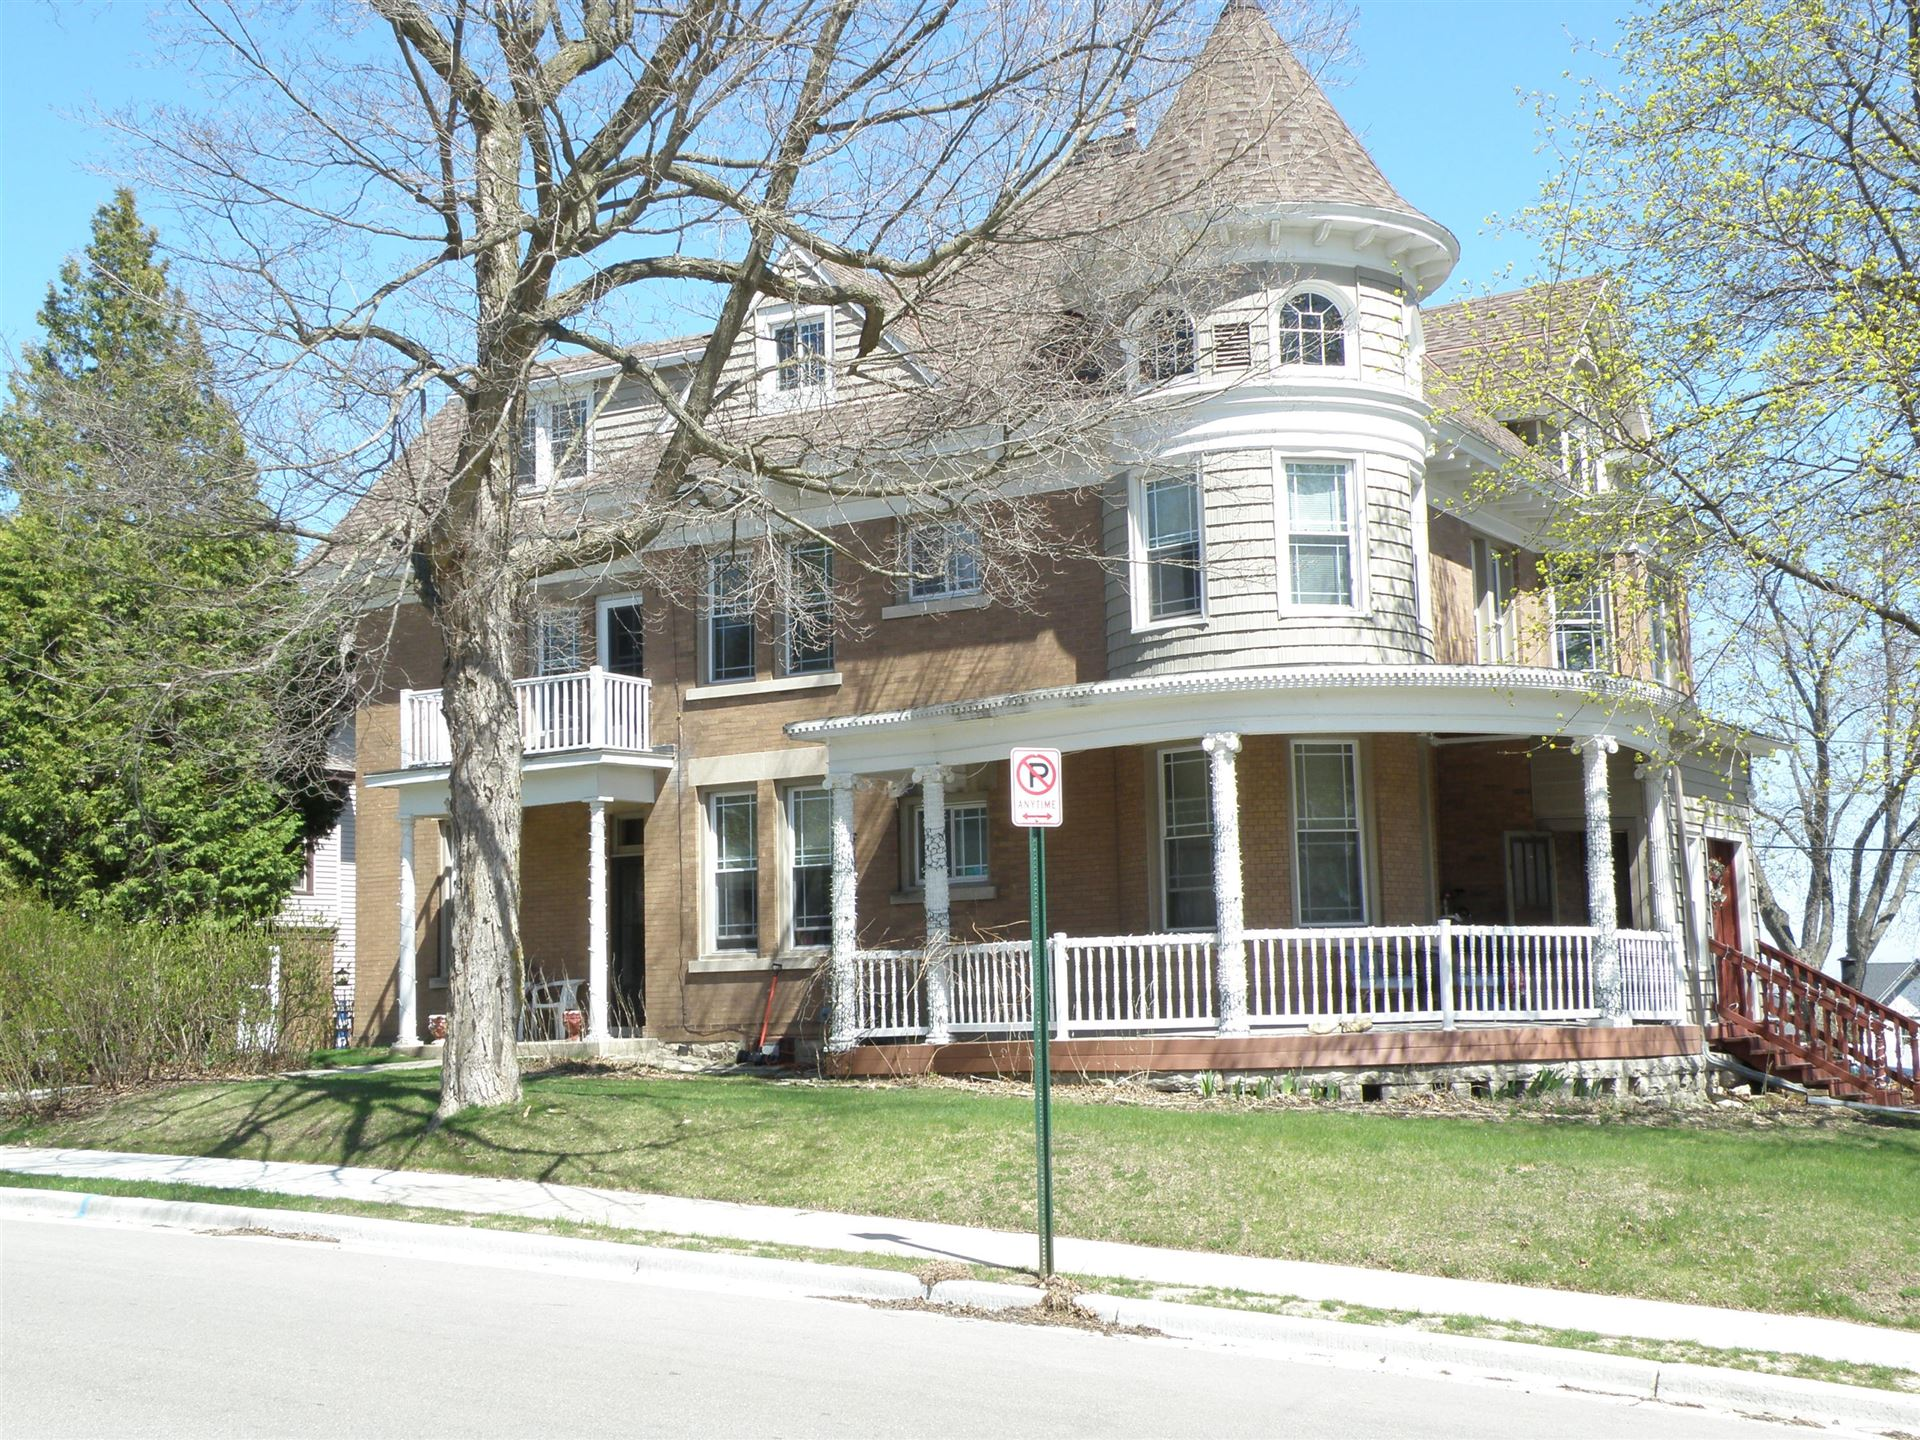 147 S 8th Ave, West Bend, WI 53095 - MLS#: 1736925